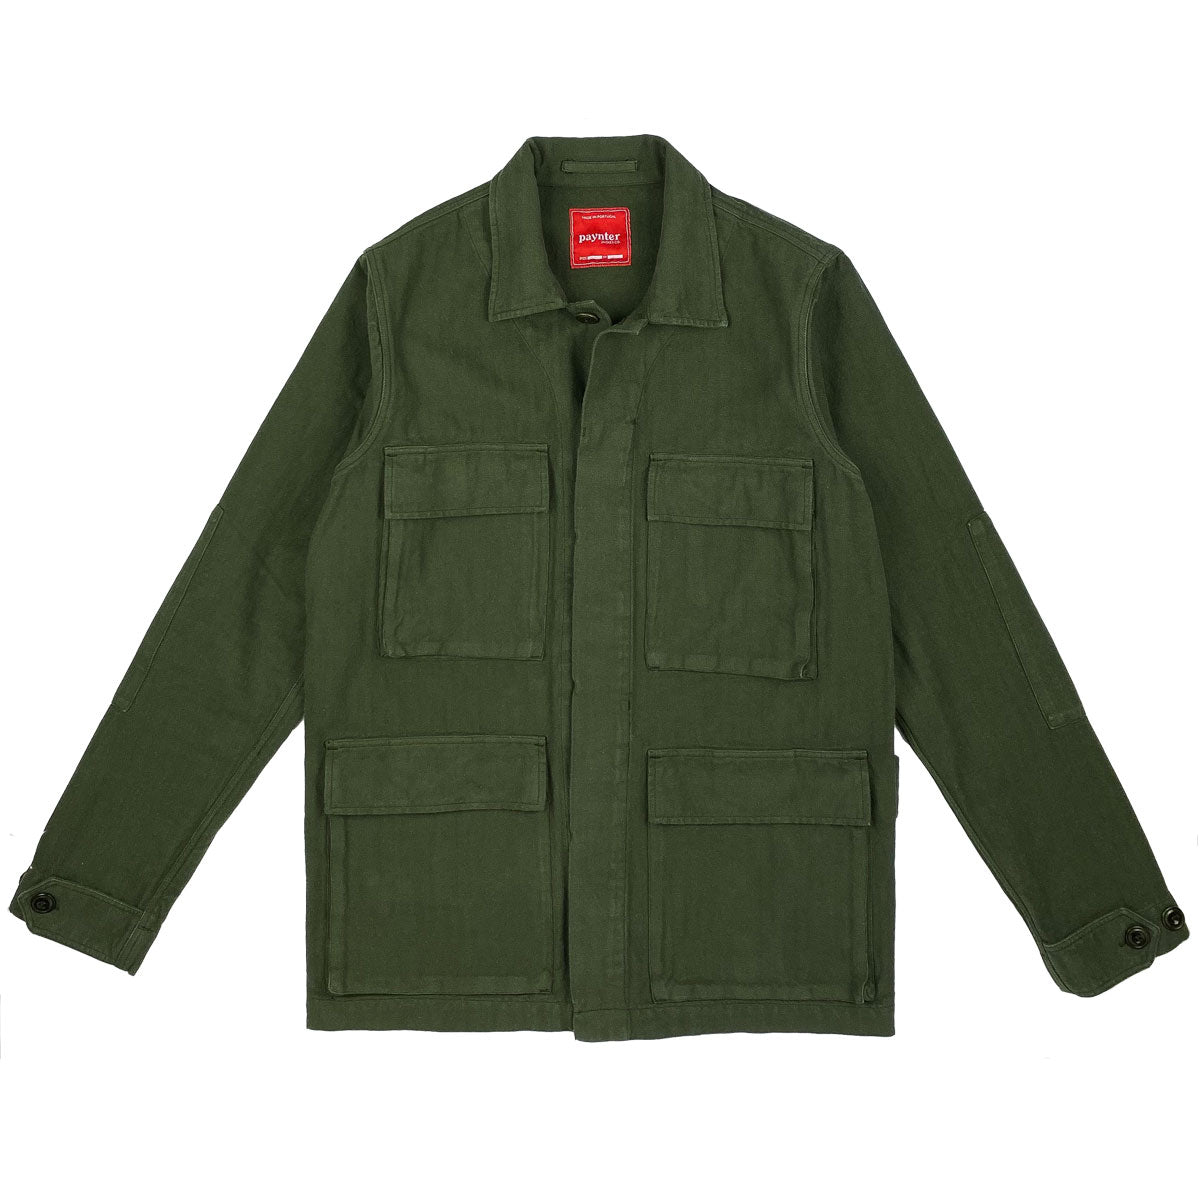 Paynter Jacket Co's Batch No.3 - The Field Jacket. Limited Edition. Label designed by Ilya Milstein. Military Olive Green. Portuguese Herringbone.